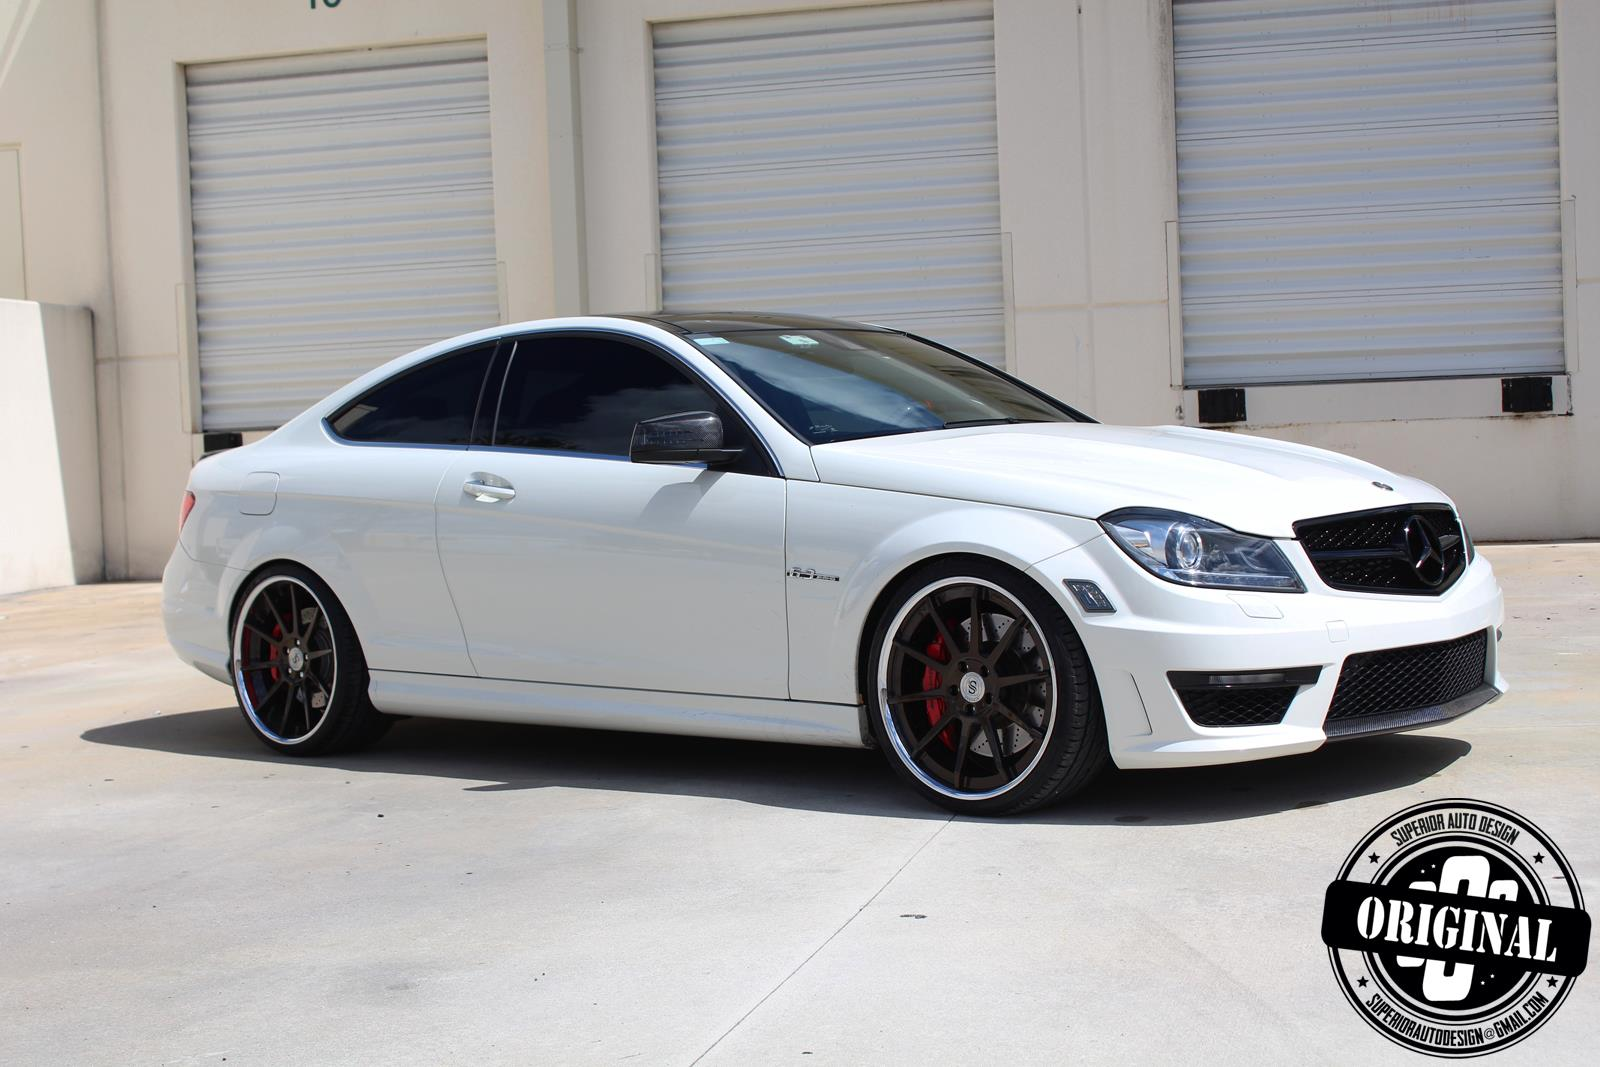 Used Mercedes Benz Car 2012 White Diesel Class C220 Cdi ...